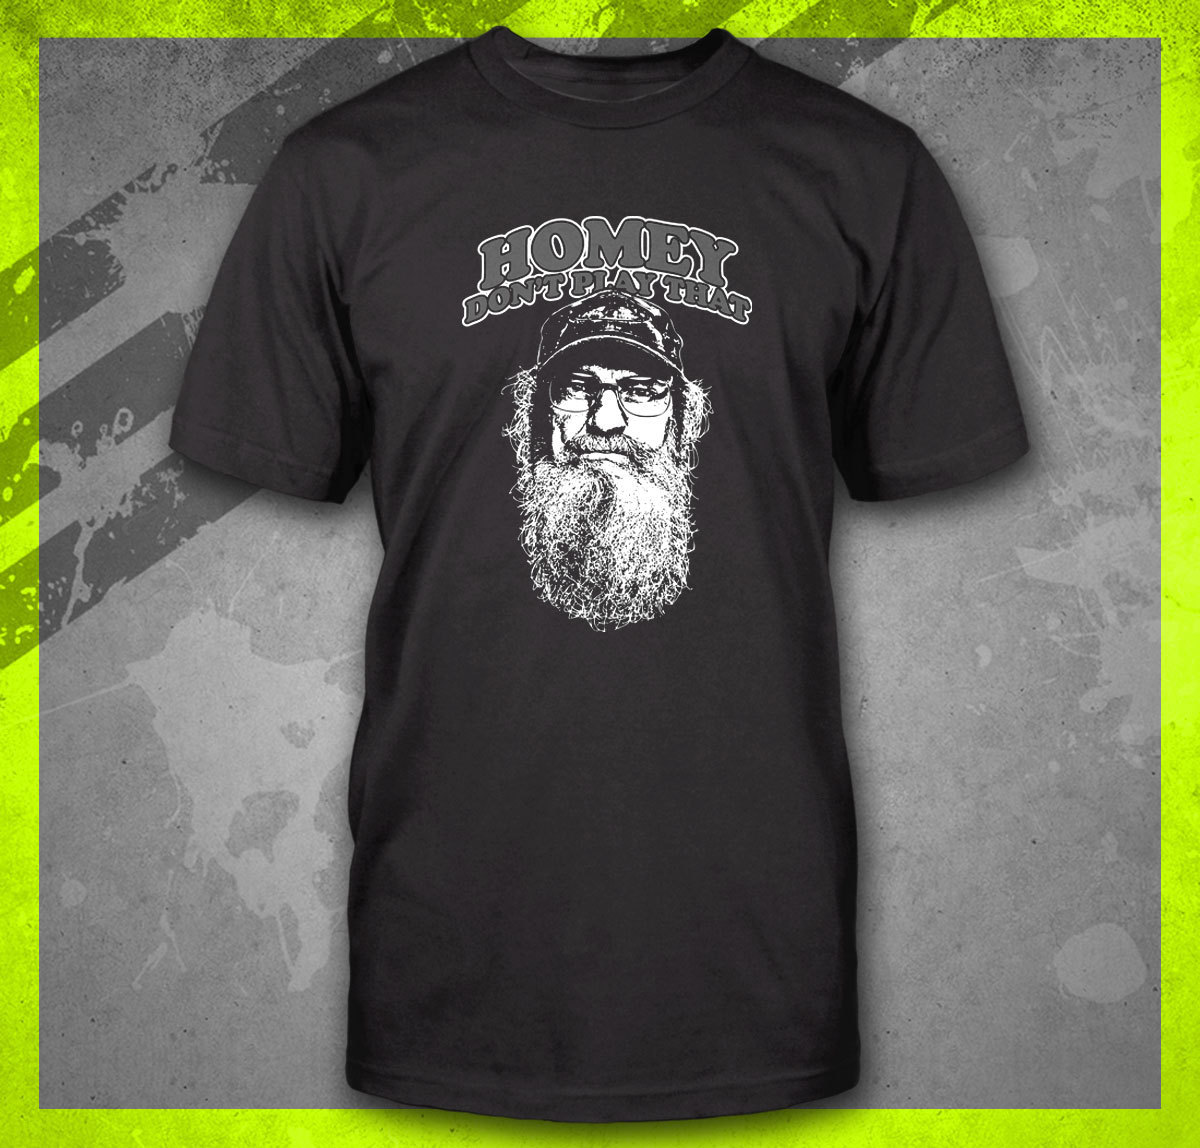 Si Robertson Quotes On T Shirts Webnuggetz Com Si Robertson